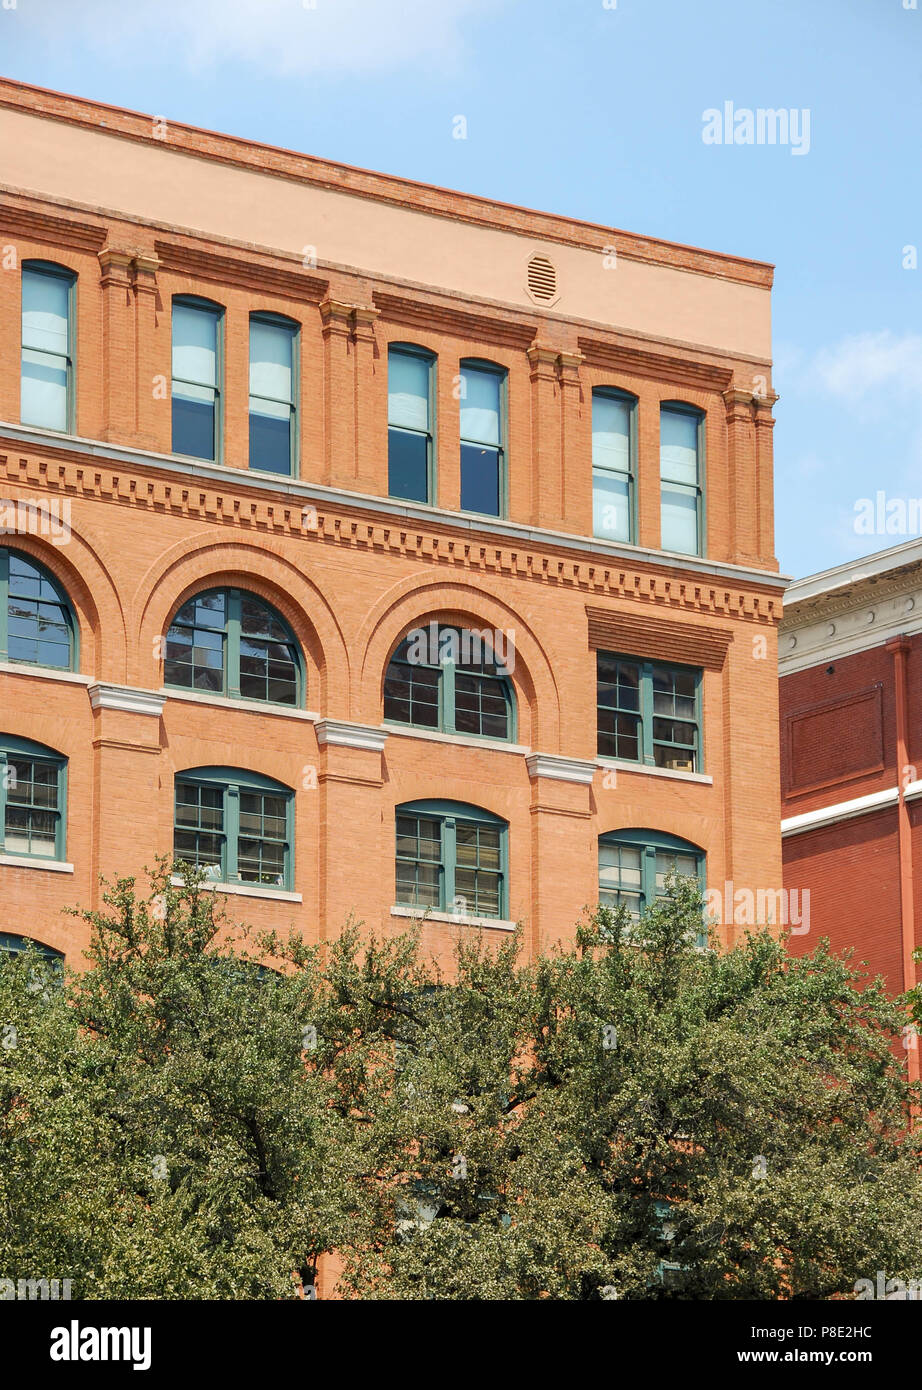 Close up view of the Texas School Book Depository building